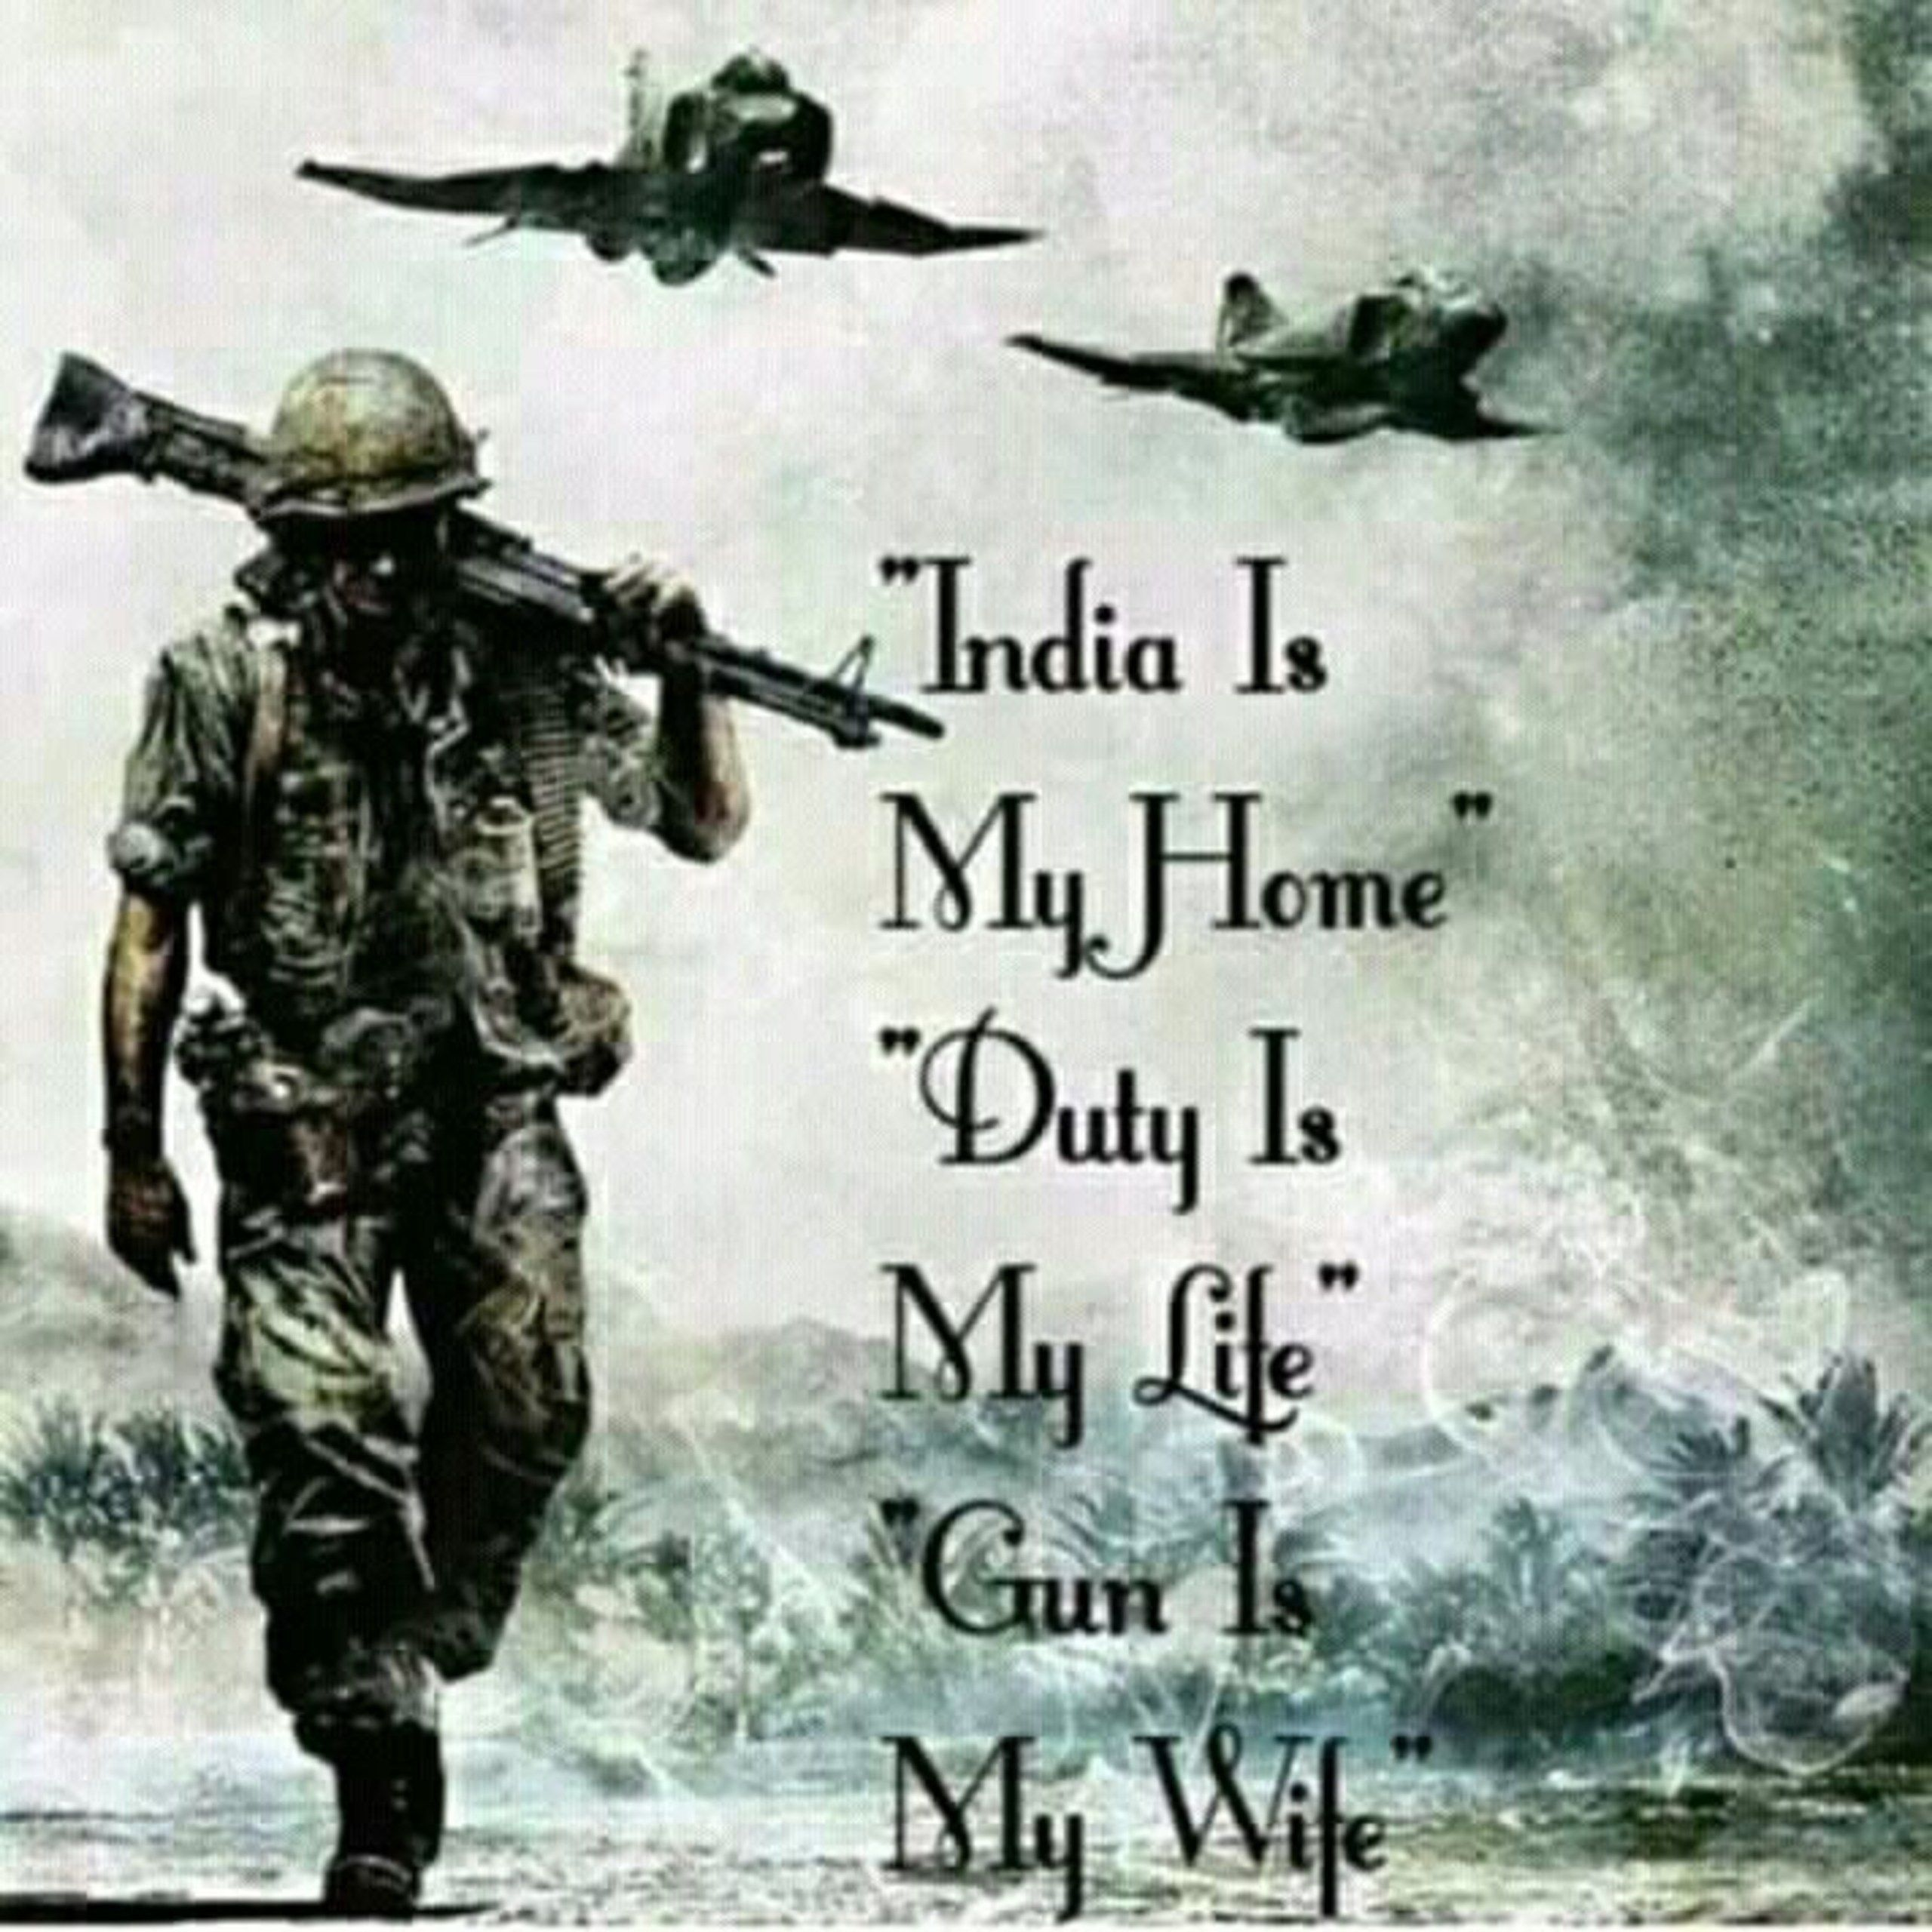 Indian Army Wallpaper Download Hd Wallpaper For Desktop And Gadget In 2020 Indian Army Wallpapers Indian Army Quotes Army Wallpaper